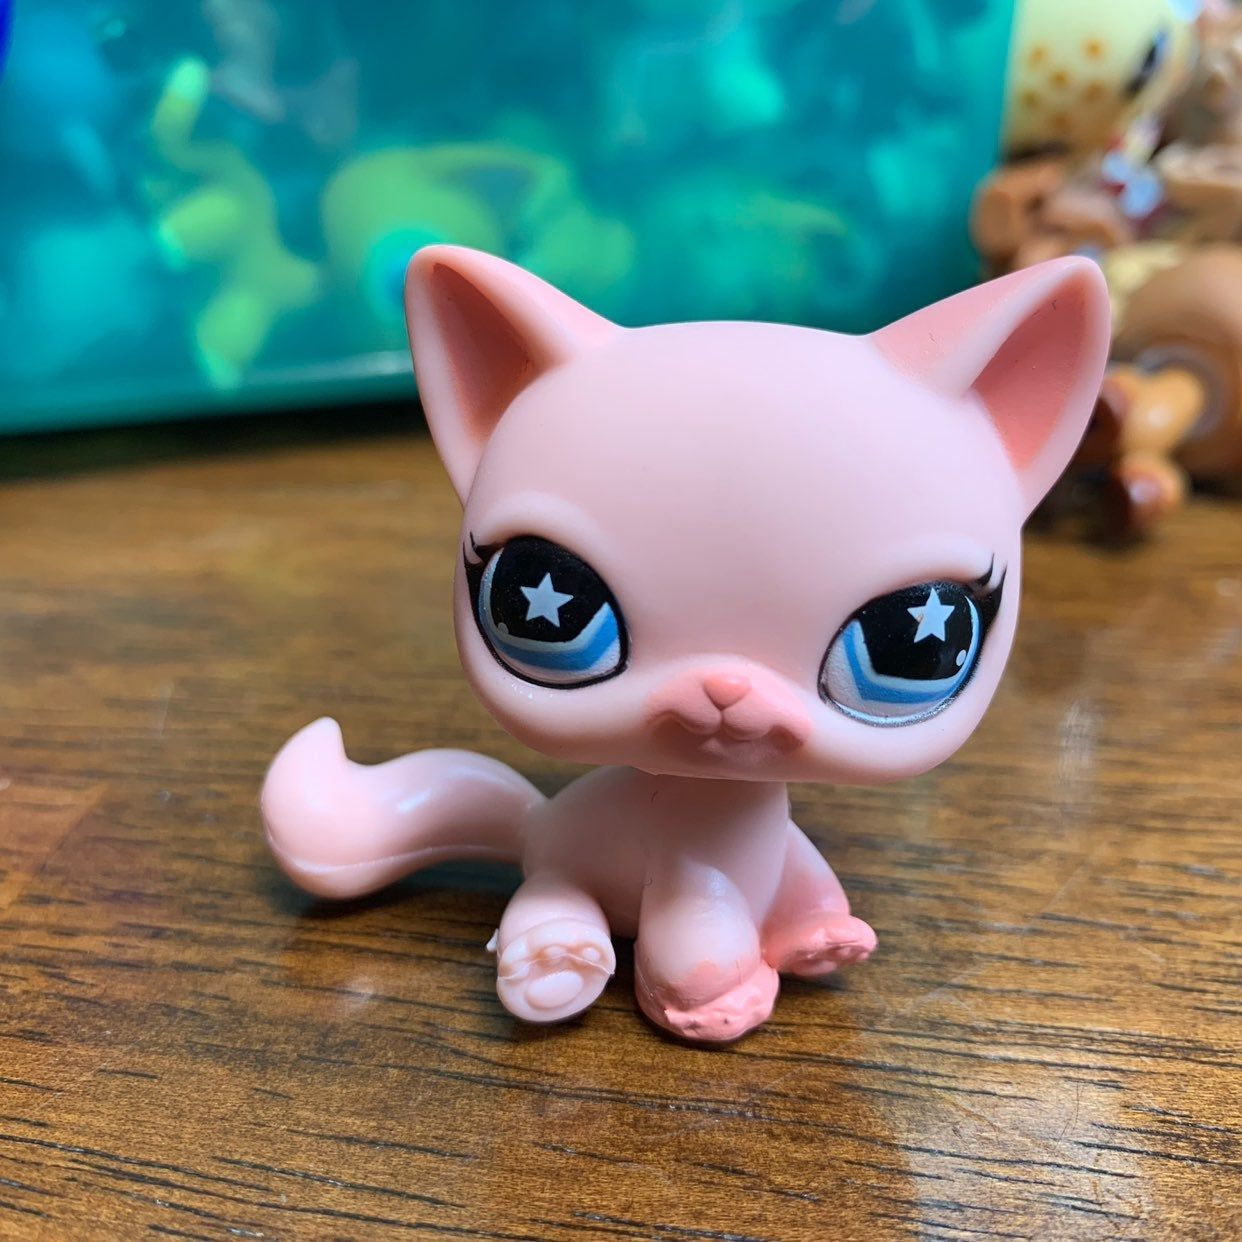 Littlest Pet Shop Pink Cat Bundle With Other Pets For Lower Prices Message Me With Any Questions Or Offers Little Pets Pink Cat Pet Shop